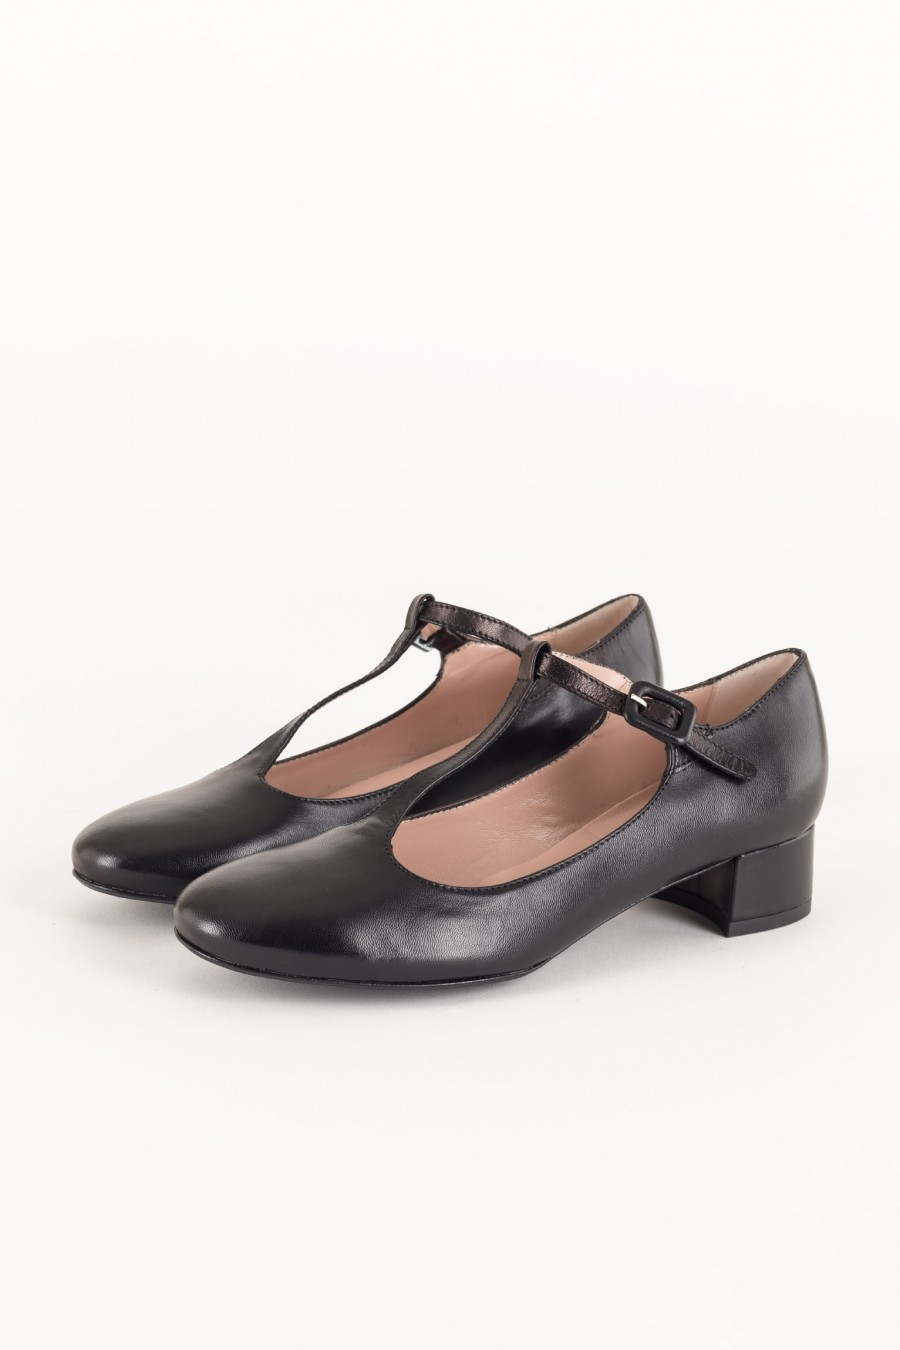 Black flats with T strap